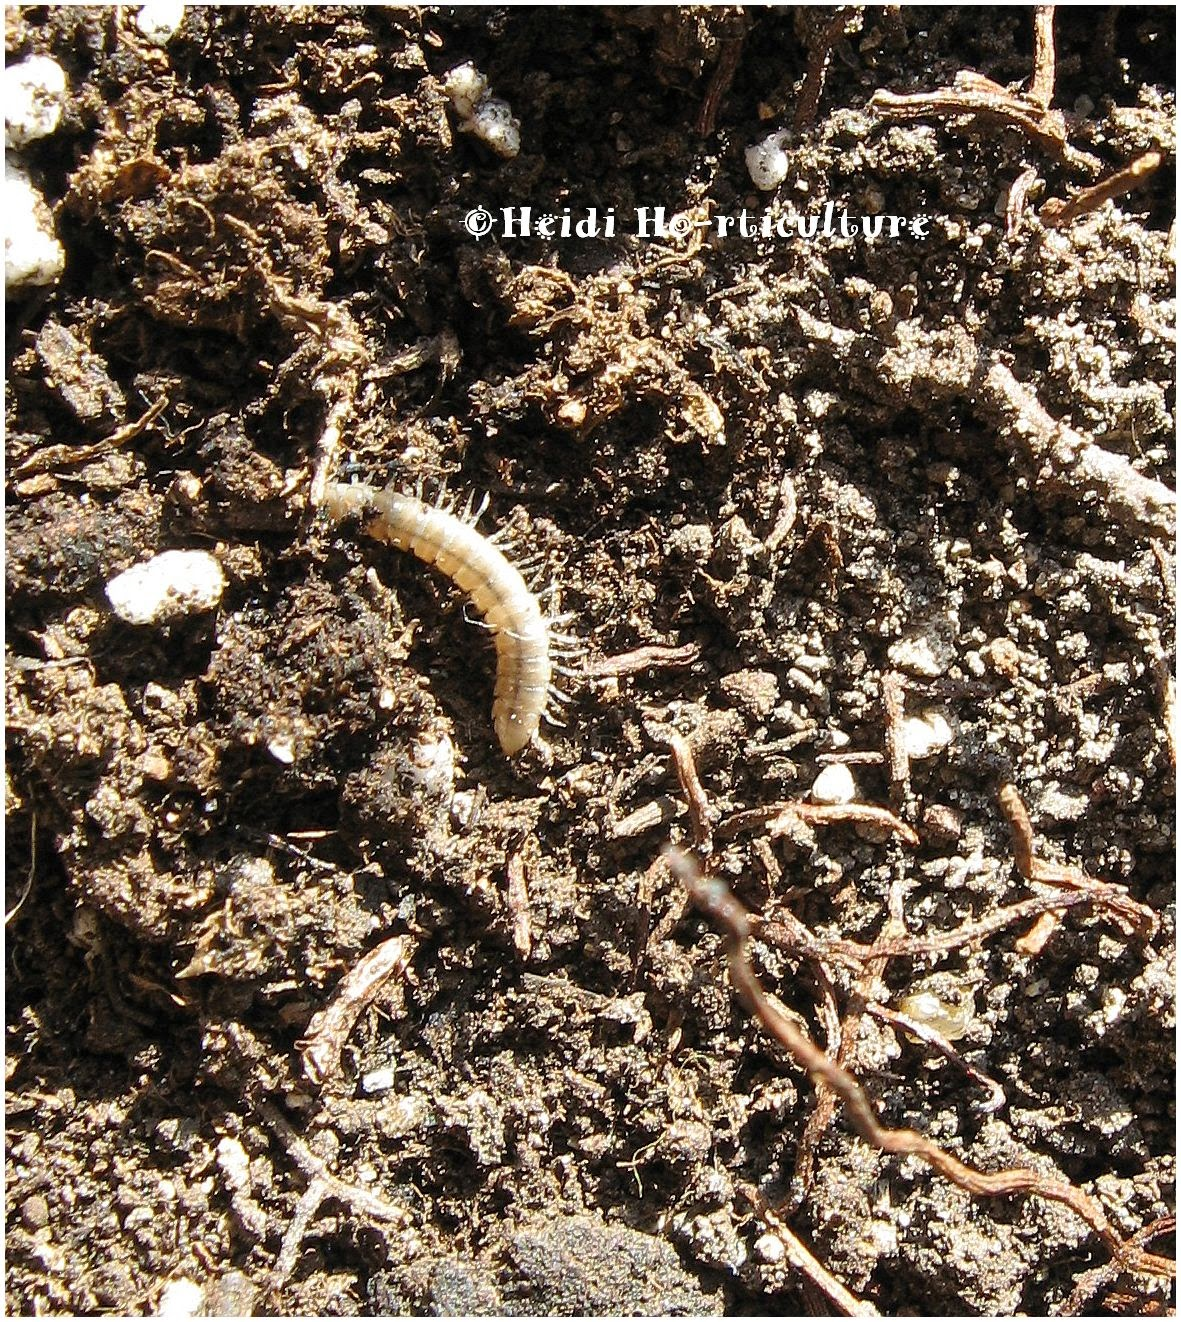 Heidi Horticulture: Worms in house plant soil